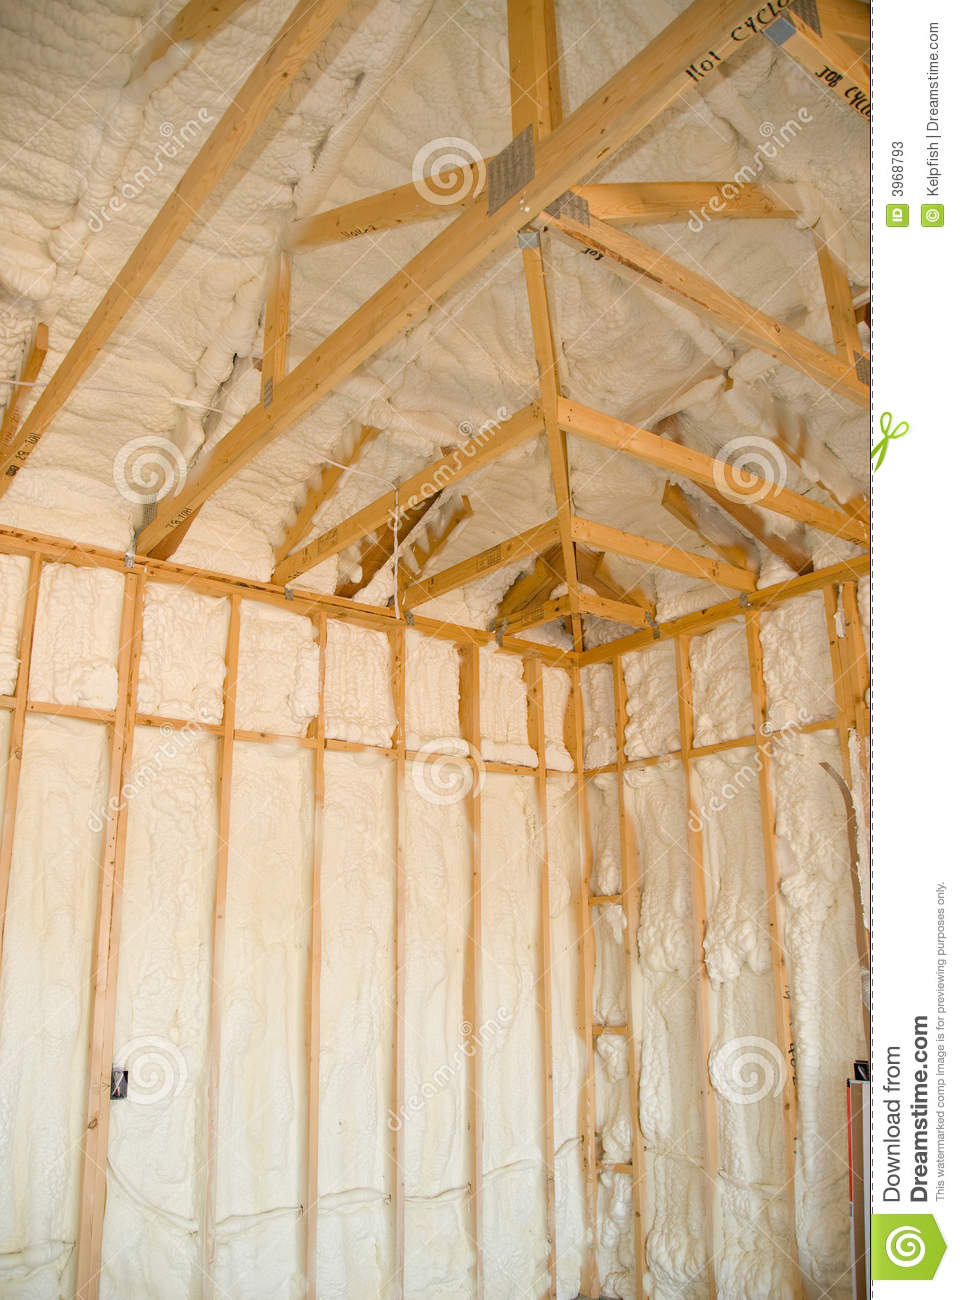 New home insulation stock photos image 3968793 for New home insulation